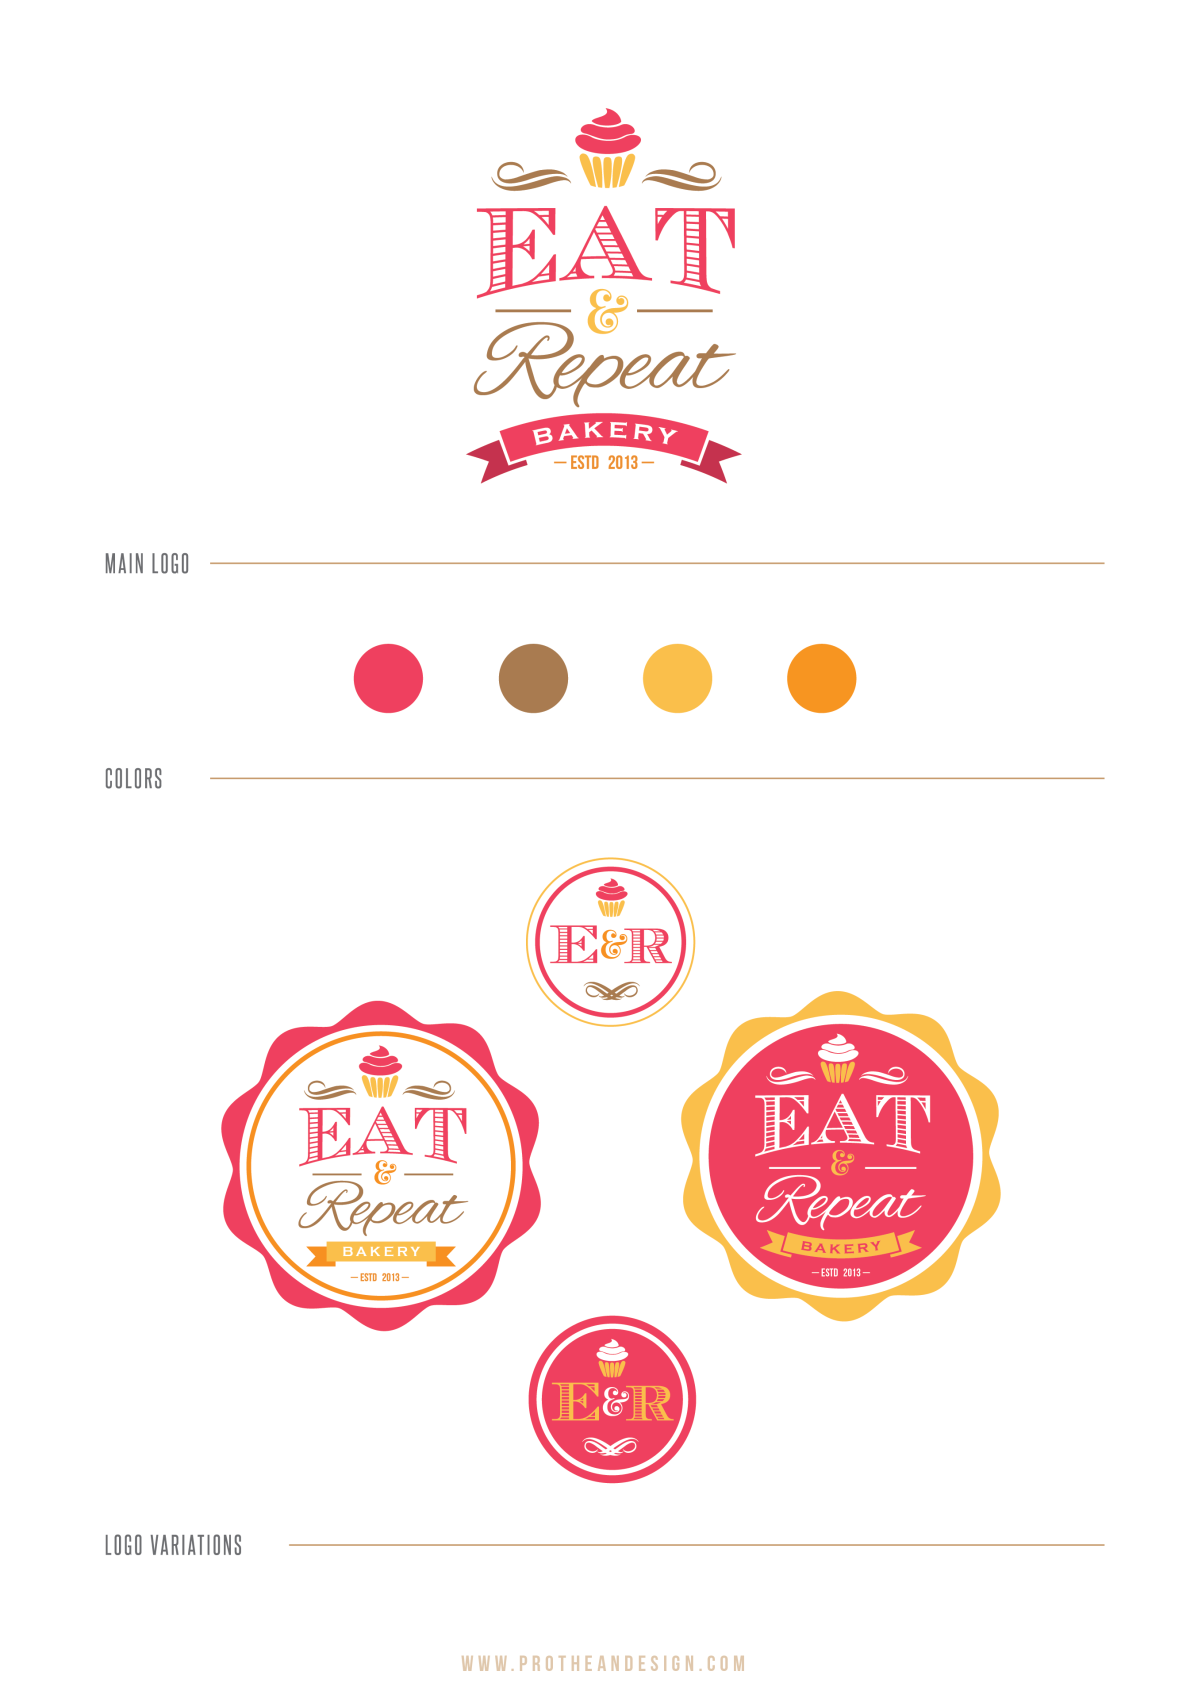 Create the next logo for Eat & repeat